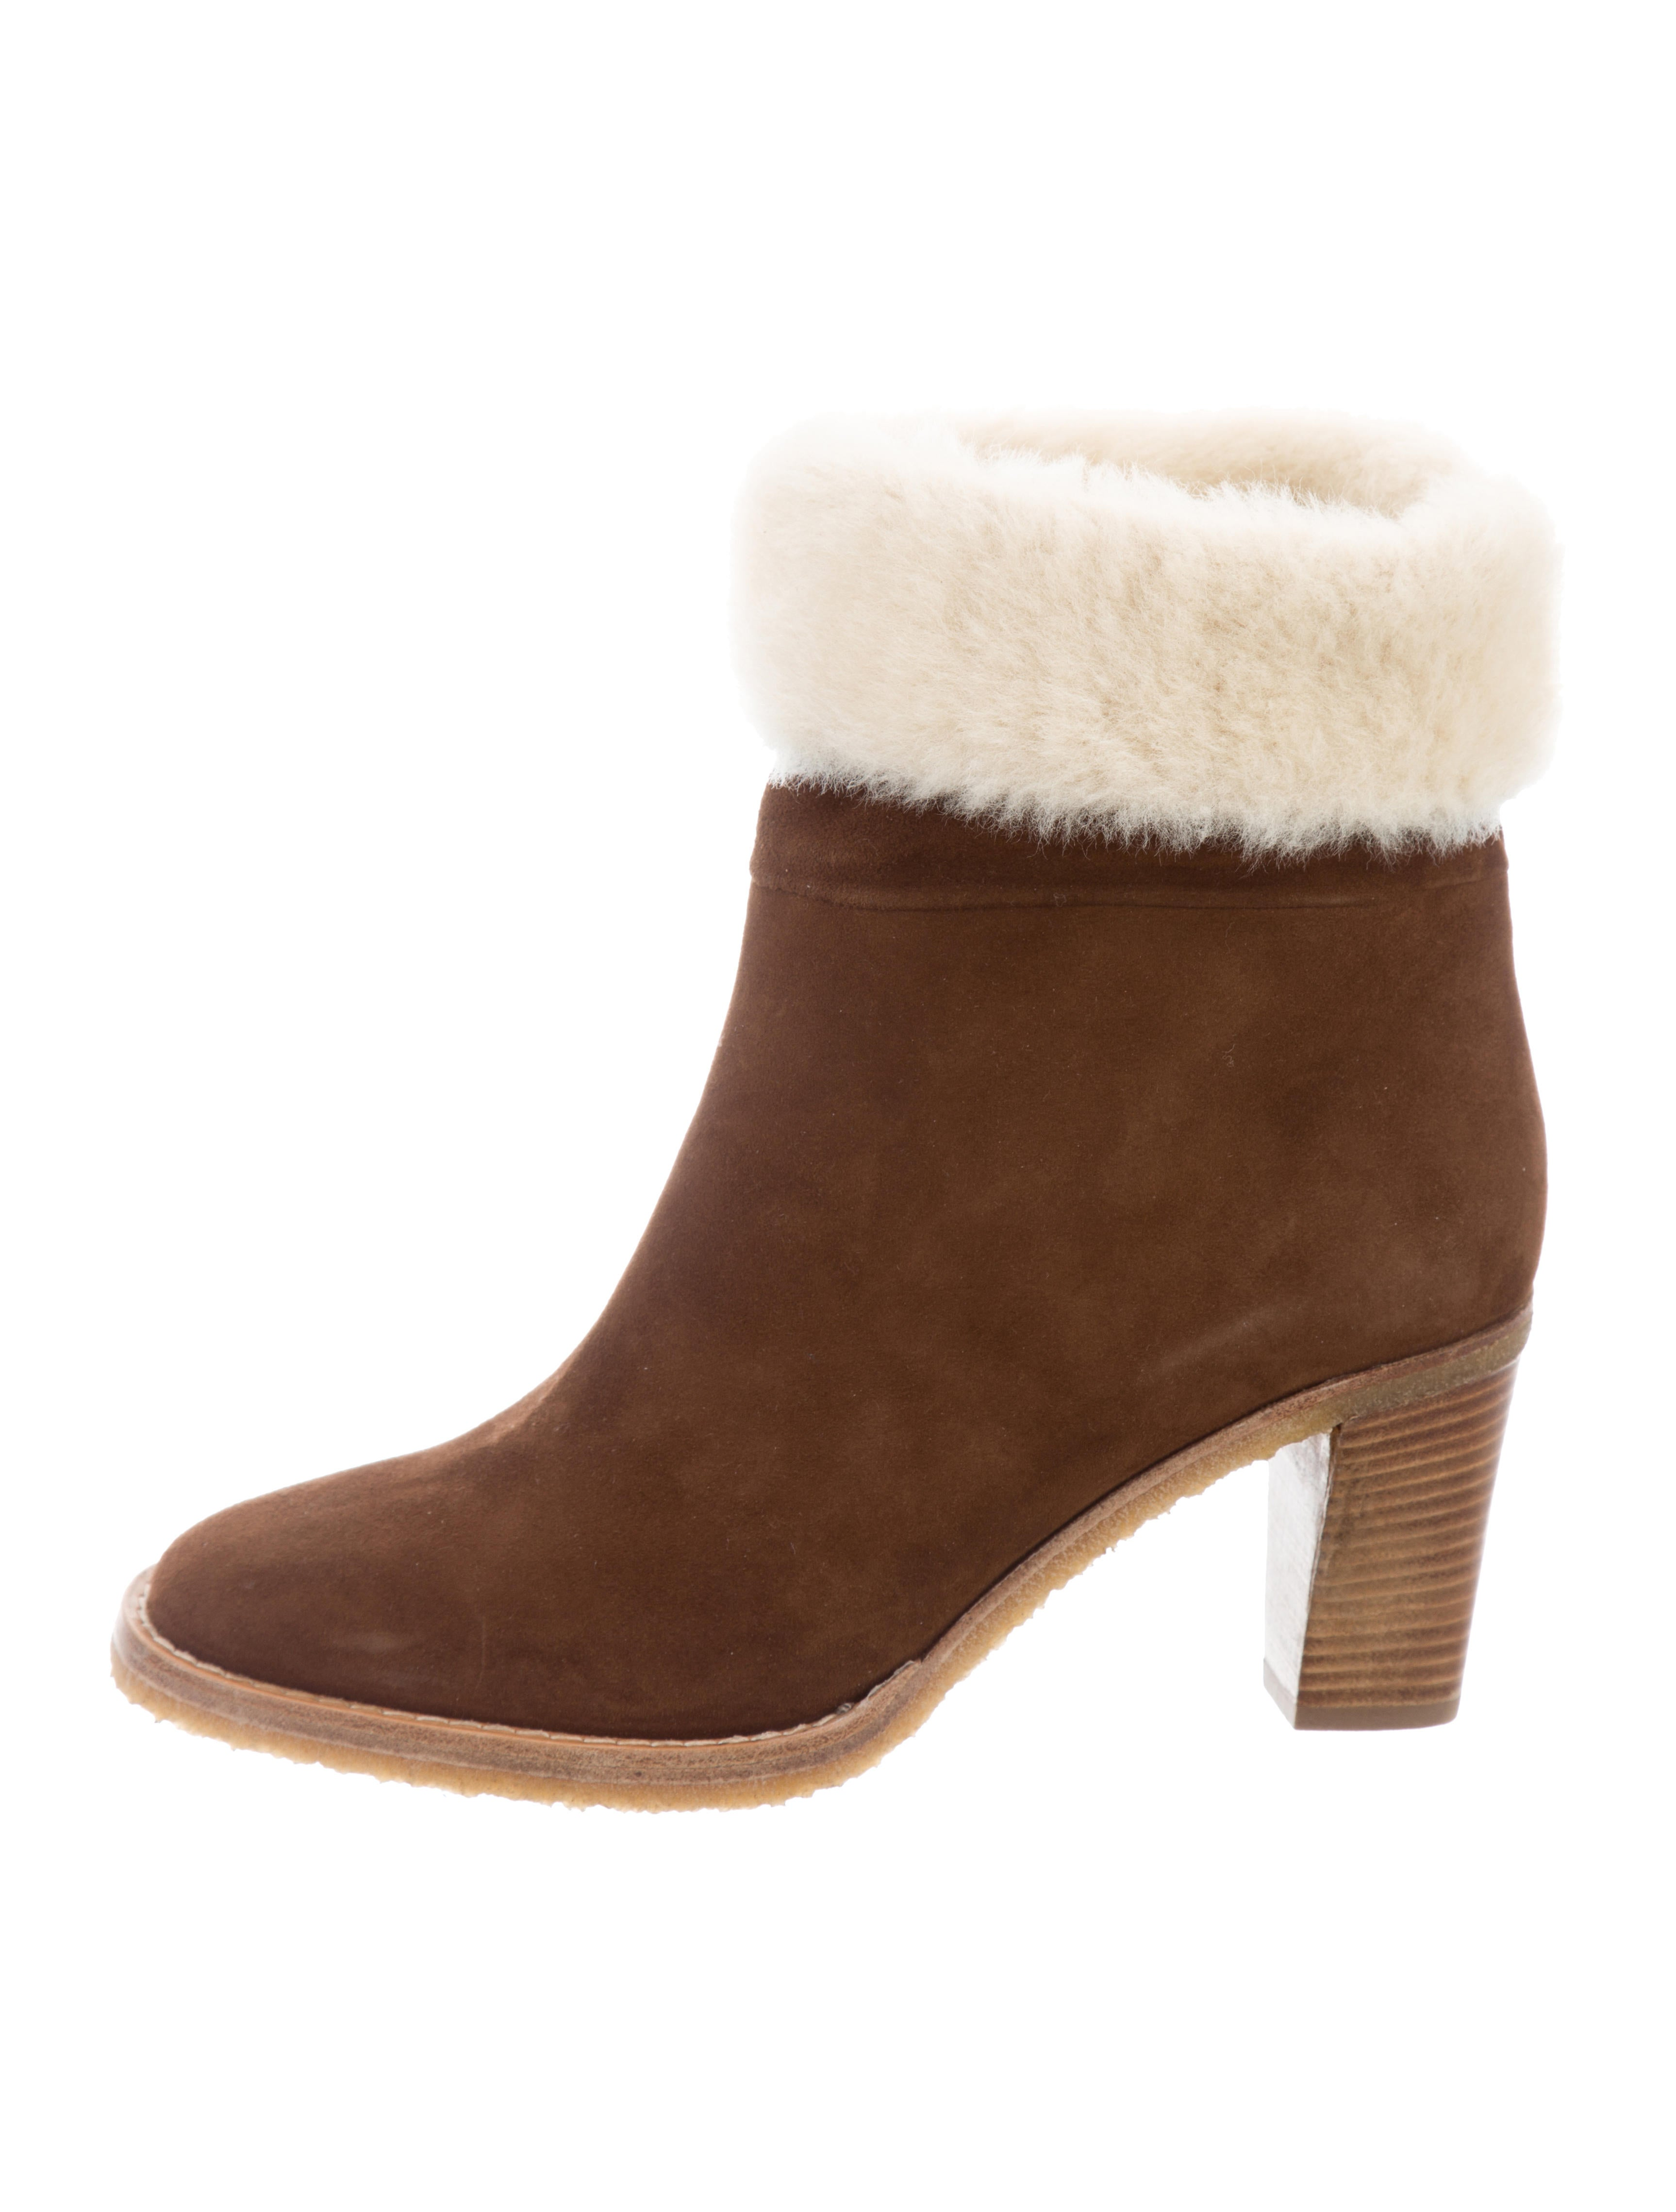 Helen suede ankle boots Gabriela Hearst Czrltvlcv